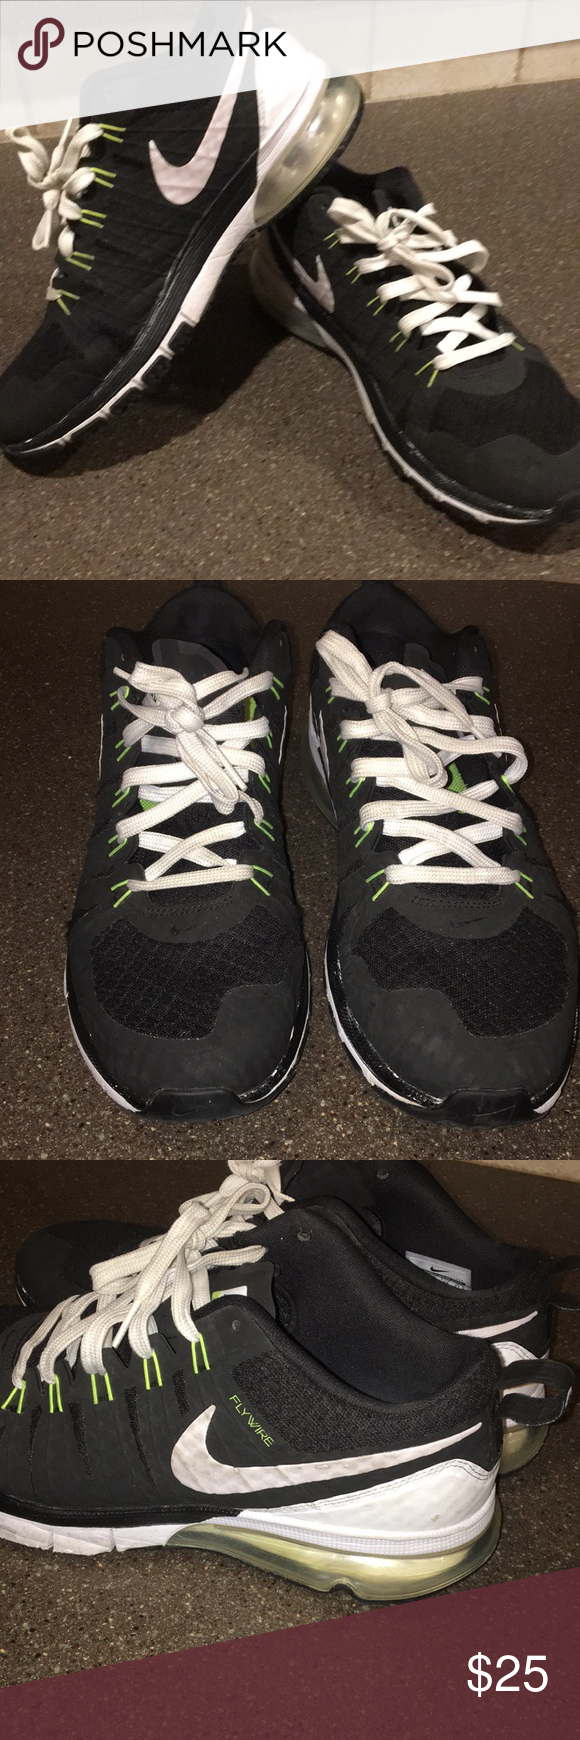 Men's NIKE Air max Tri 180 men's sneaker 9.5 Great used condition NIKE  tennis shoe. Size 9.5. My son only wore these for a month or so before he  grew out of ...